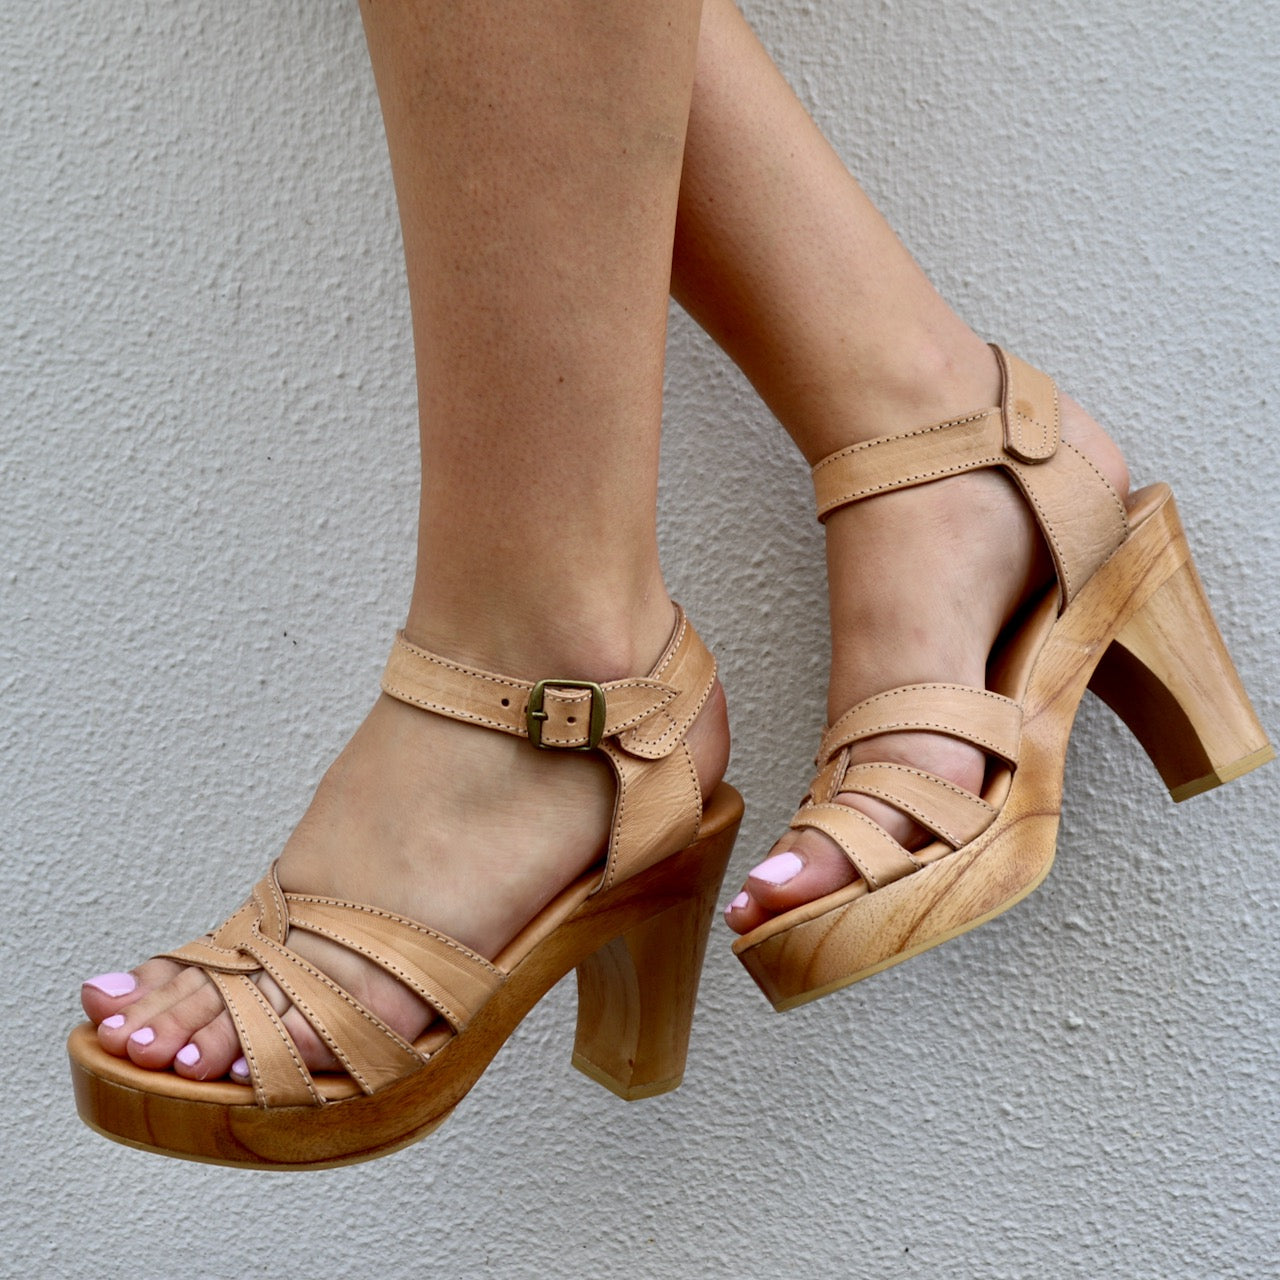 **PREORDER** SAGE HEEL : NUDE FOR DELIVERY LATE JAN/EARLY FEB